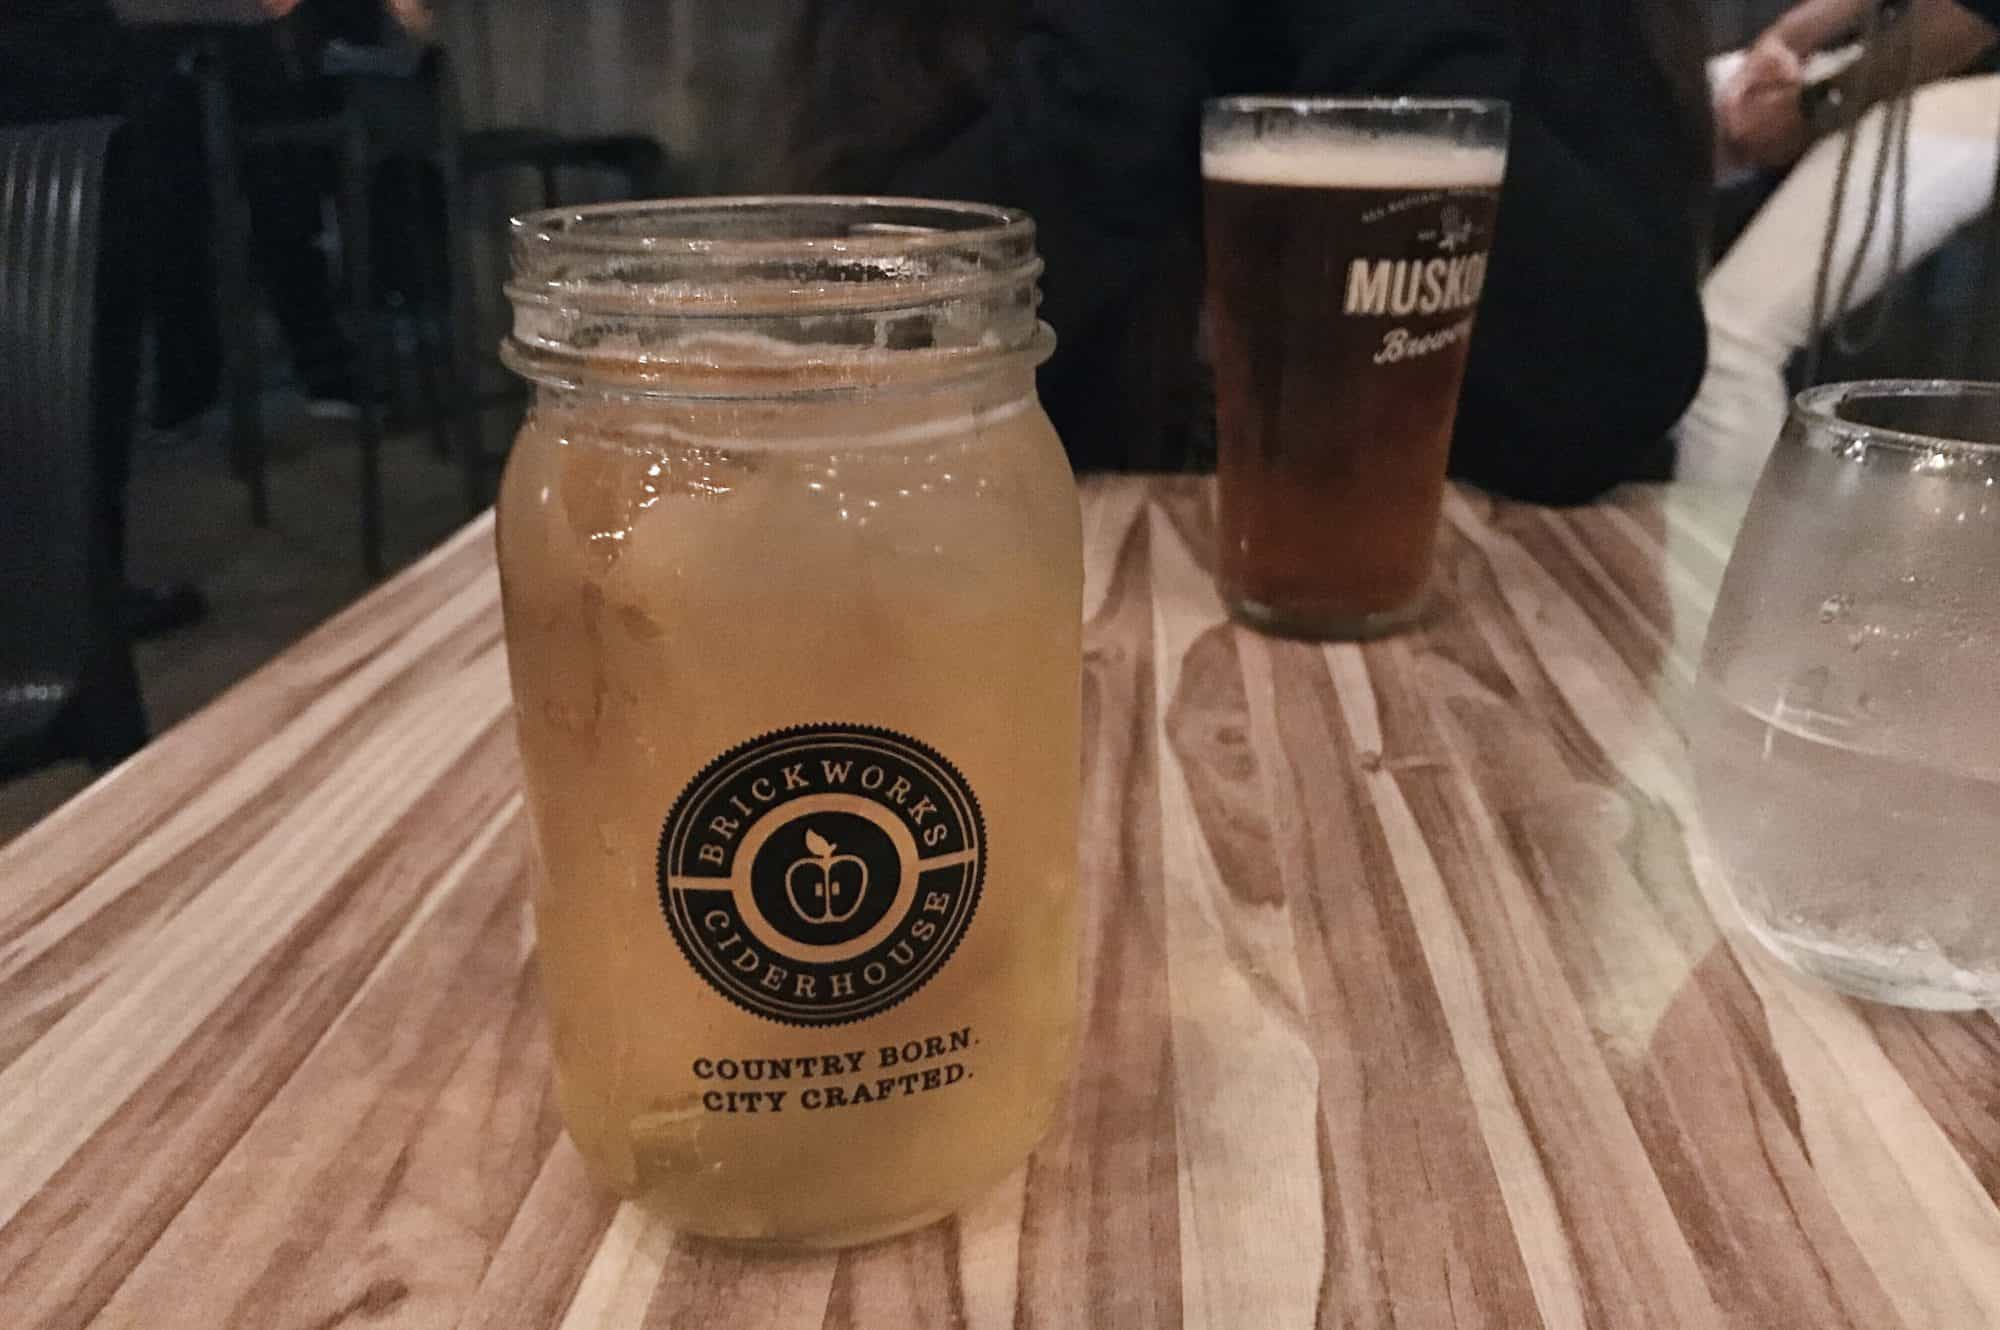 Summer road trip in Hamilton, Ontario | how to spend a day in Hamilton, Ontario, Canada | best things to do in Dundas, ON | Hamilton city guide | Diary of a Toronto Girl, a Canadian lifestyle blog